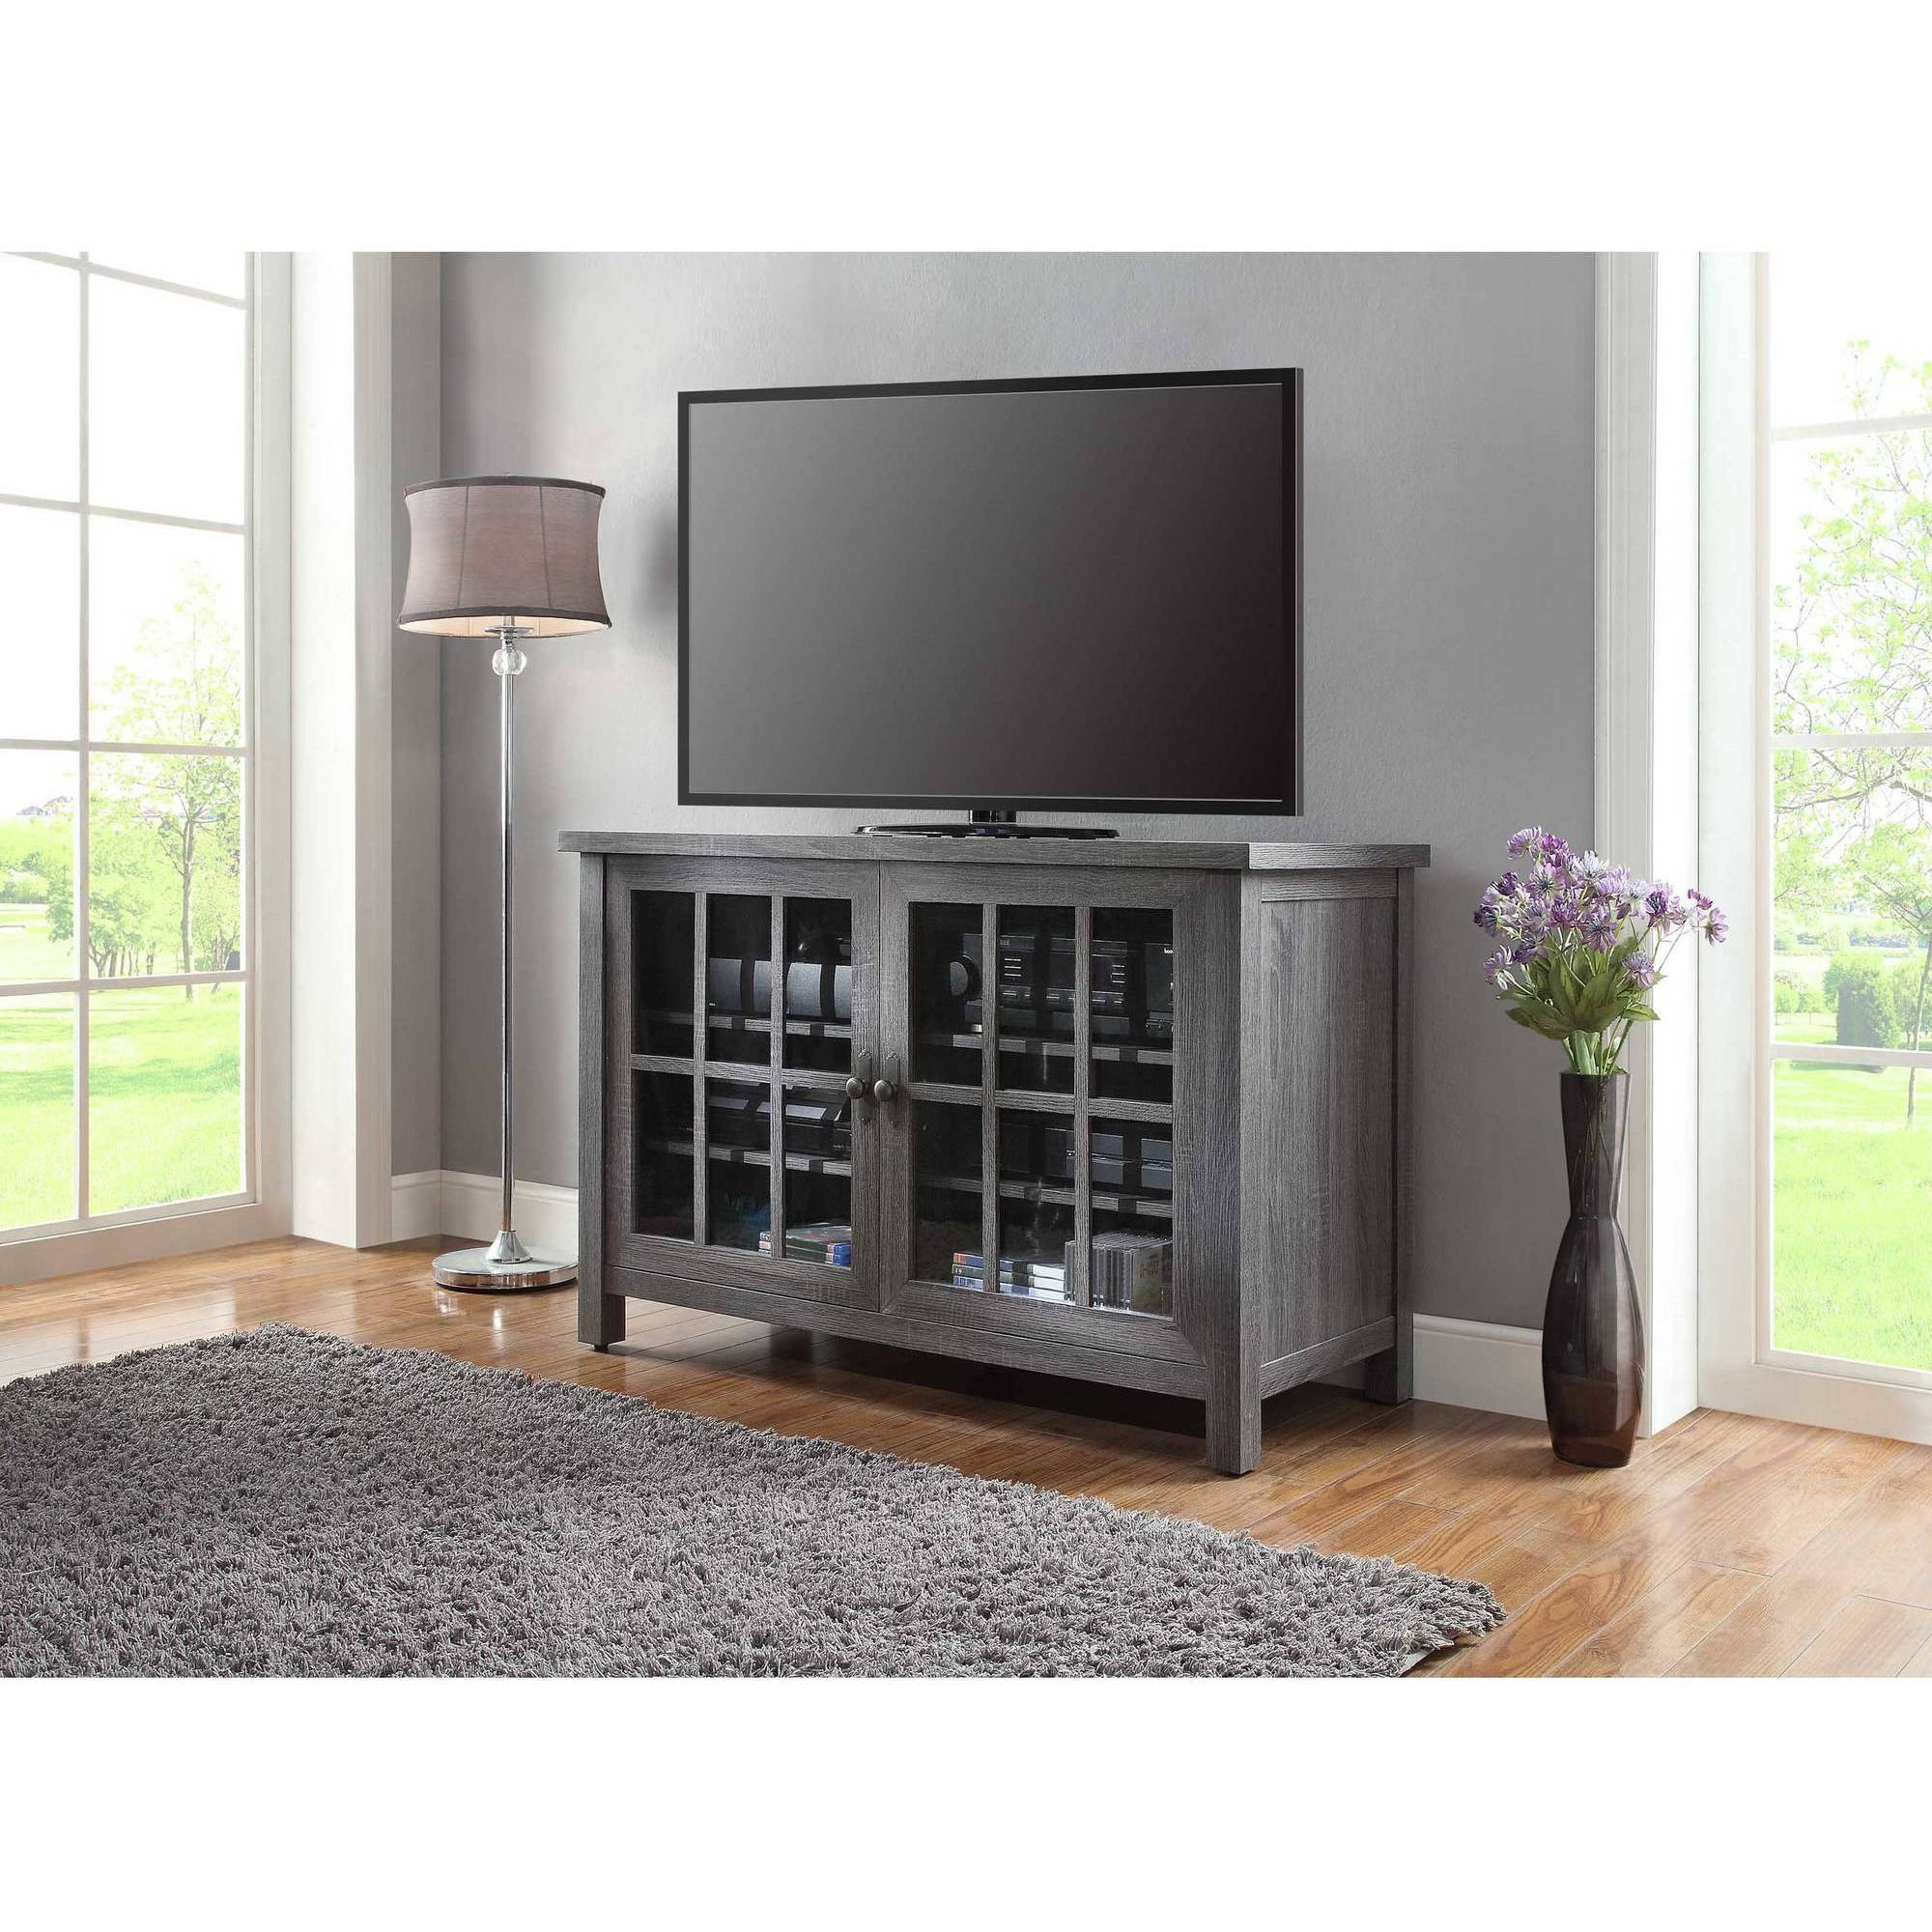 Square Tv Stands With Well Known Better Homes And Gardens Oxford Square Tv Console For Tvs Up To (View 4 of 20)